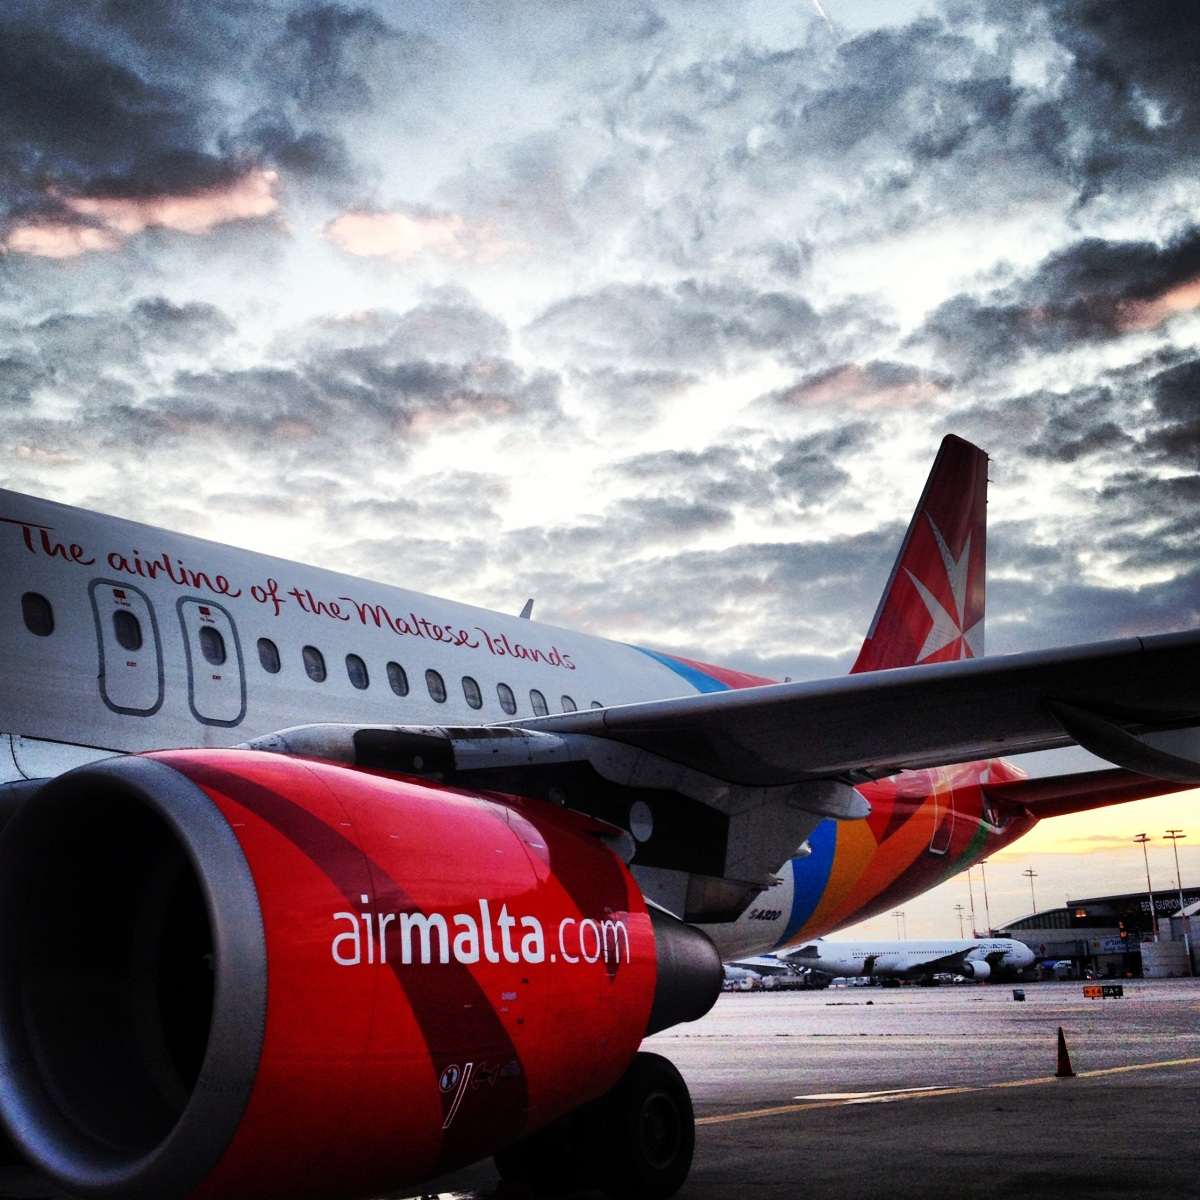 Airplane Awesomeness: Air Malta